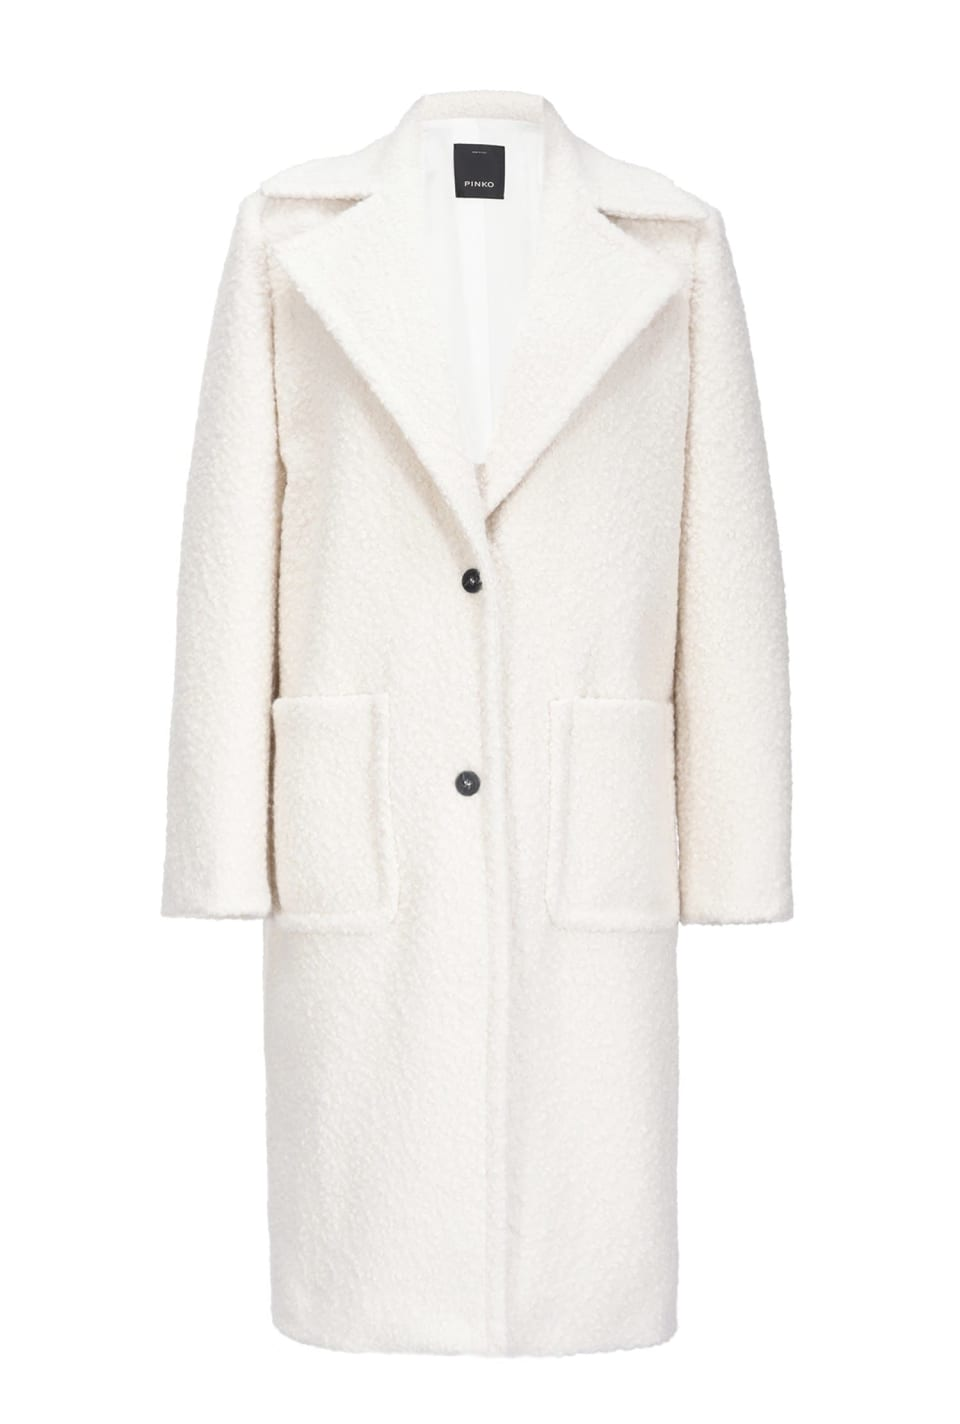 Long shearling-look coat